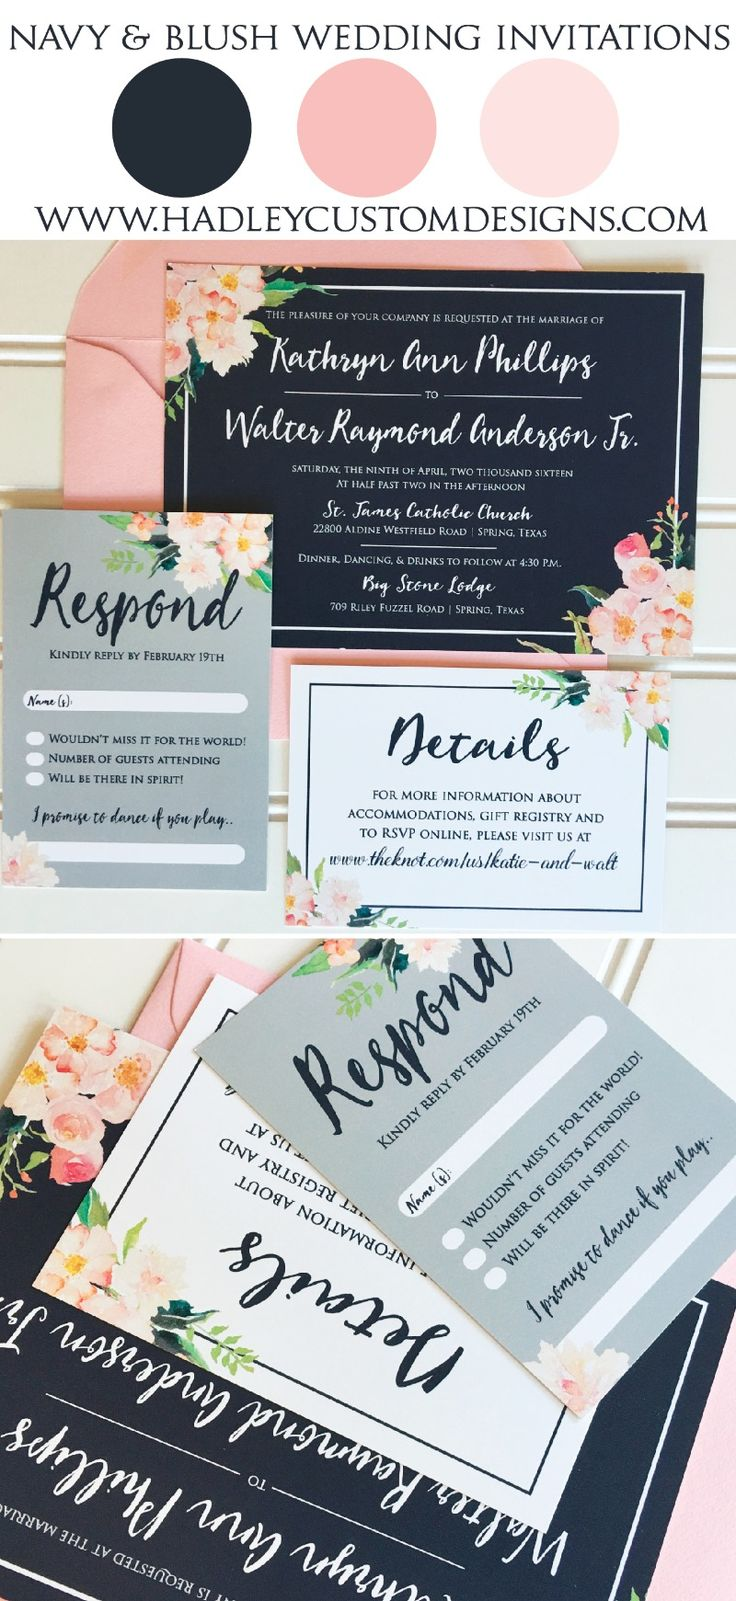 champagne blush wedding invitations%0A Hadley Designs  Wedding Invites VintageBlush